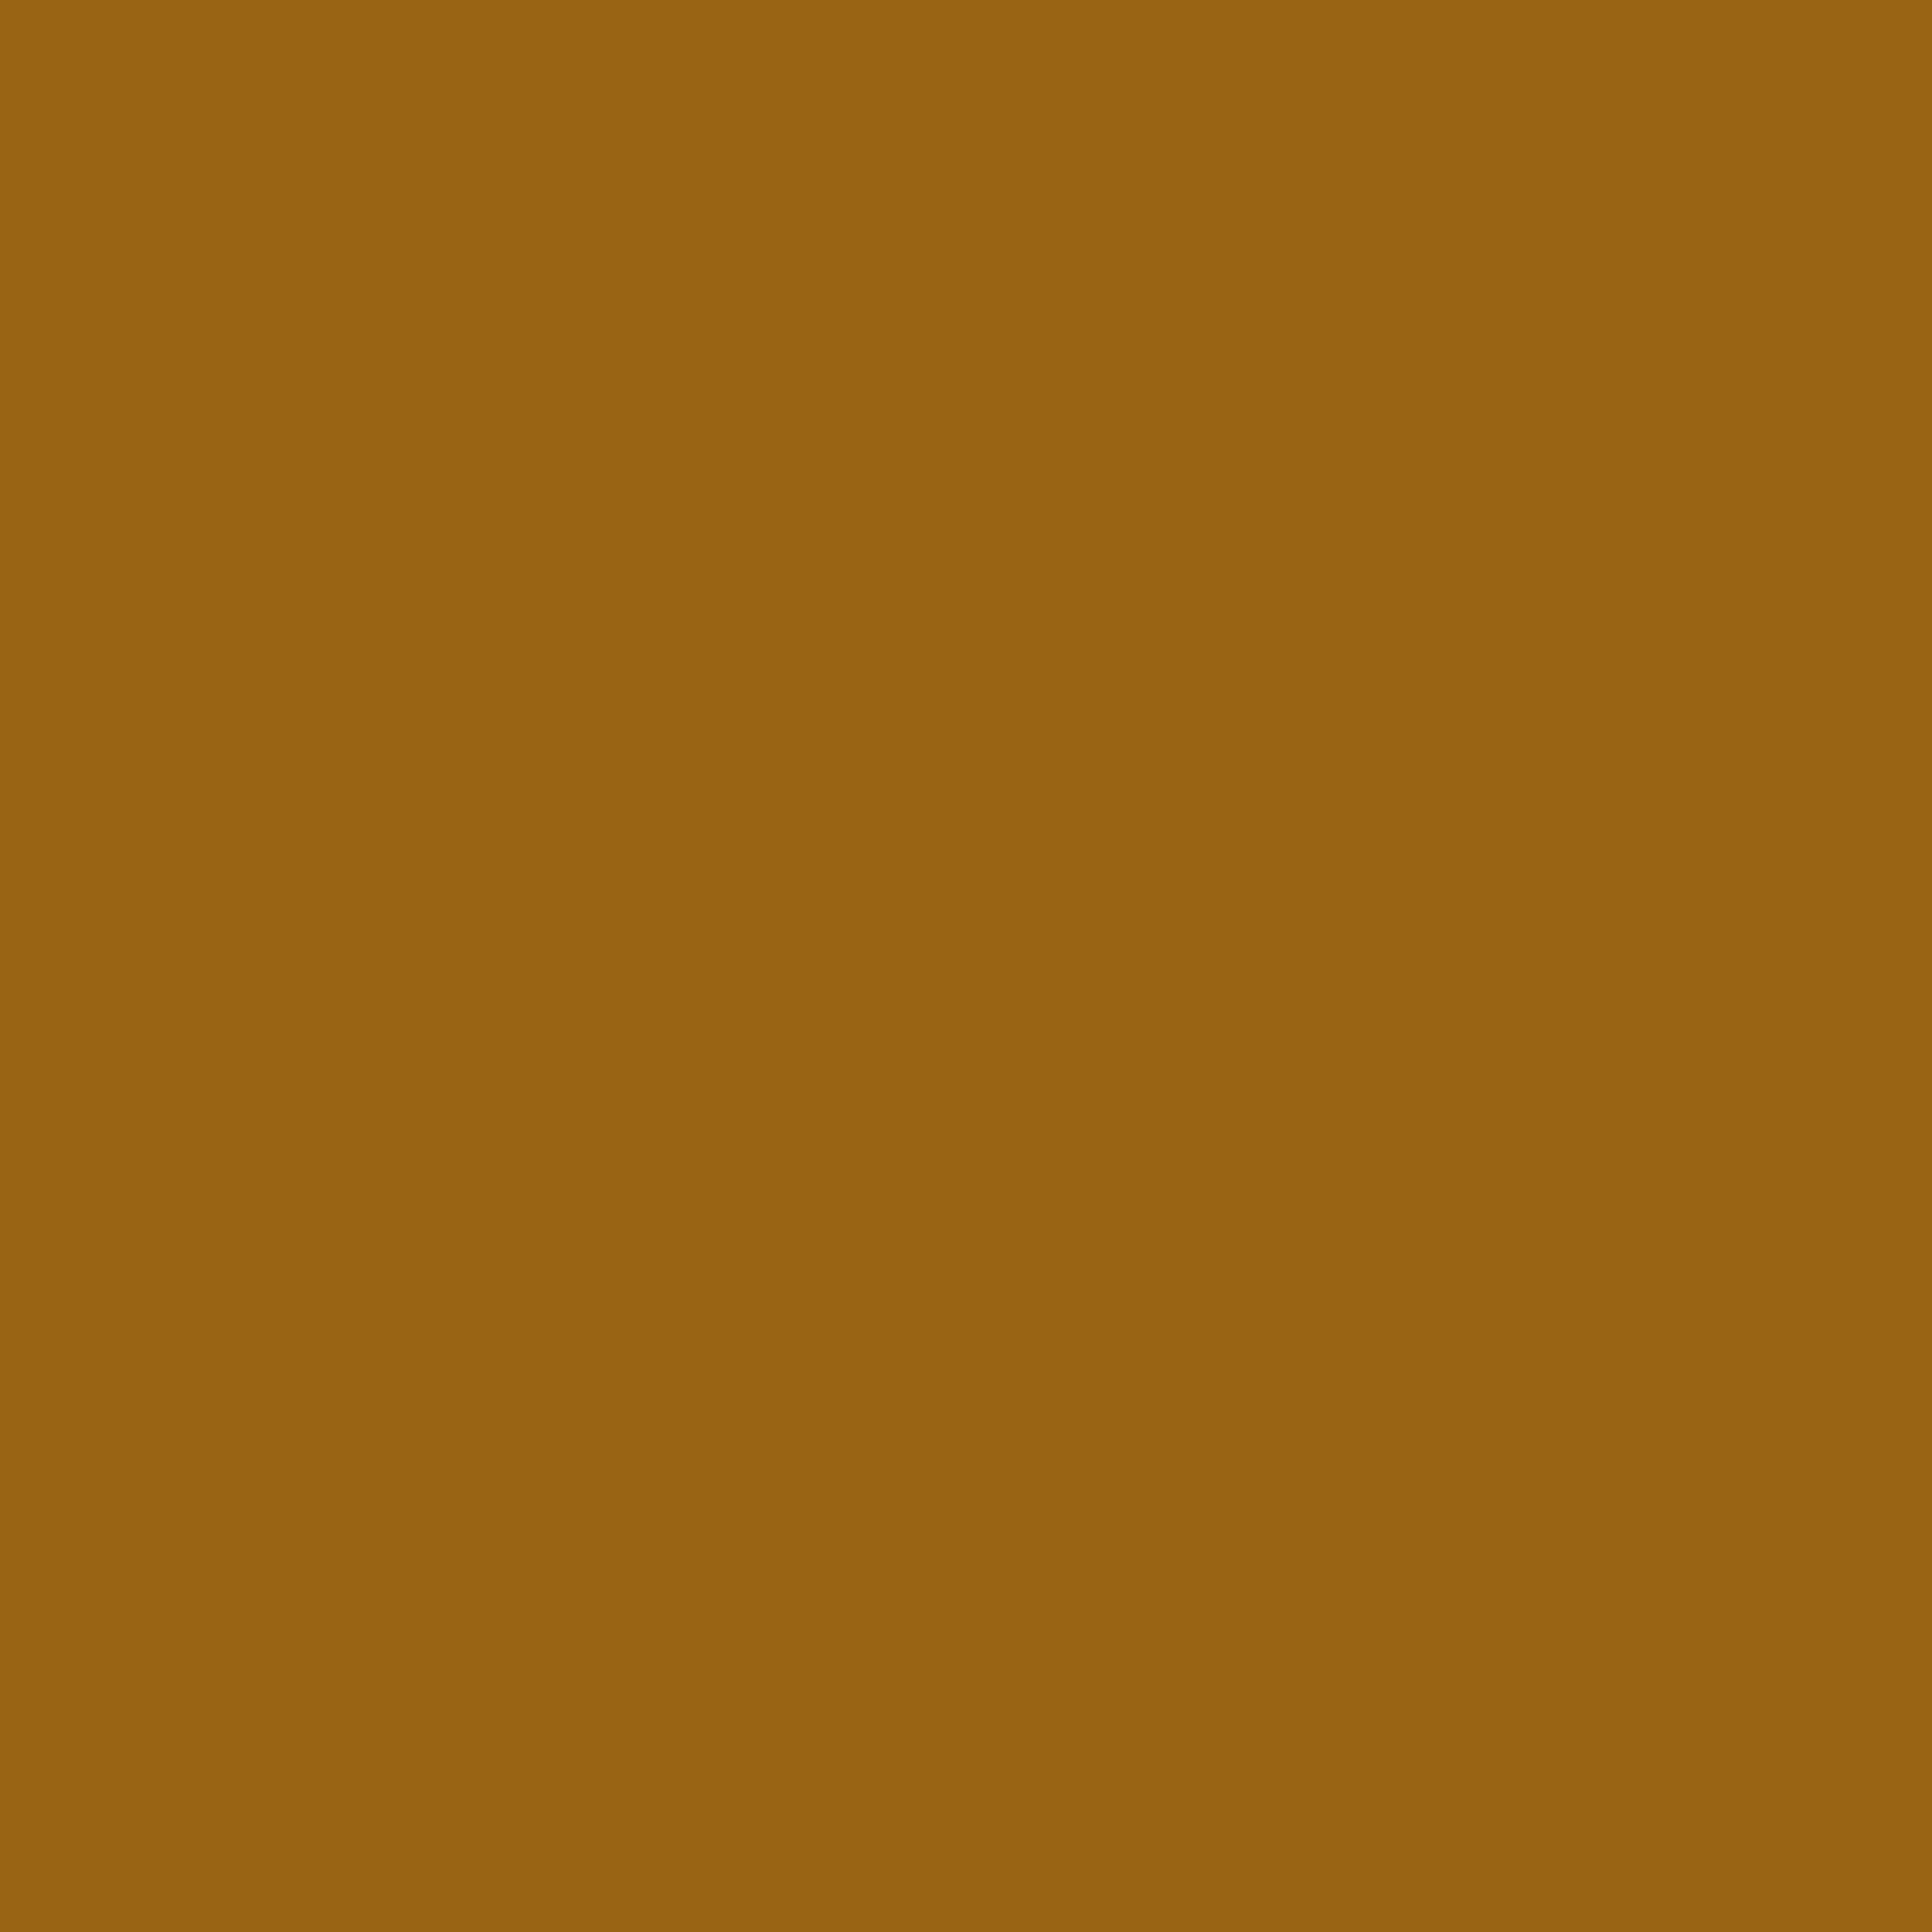 3600x3600 Golden Brown Solid Color Background